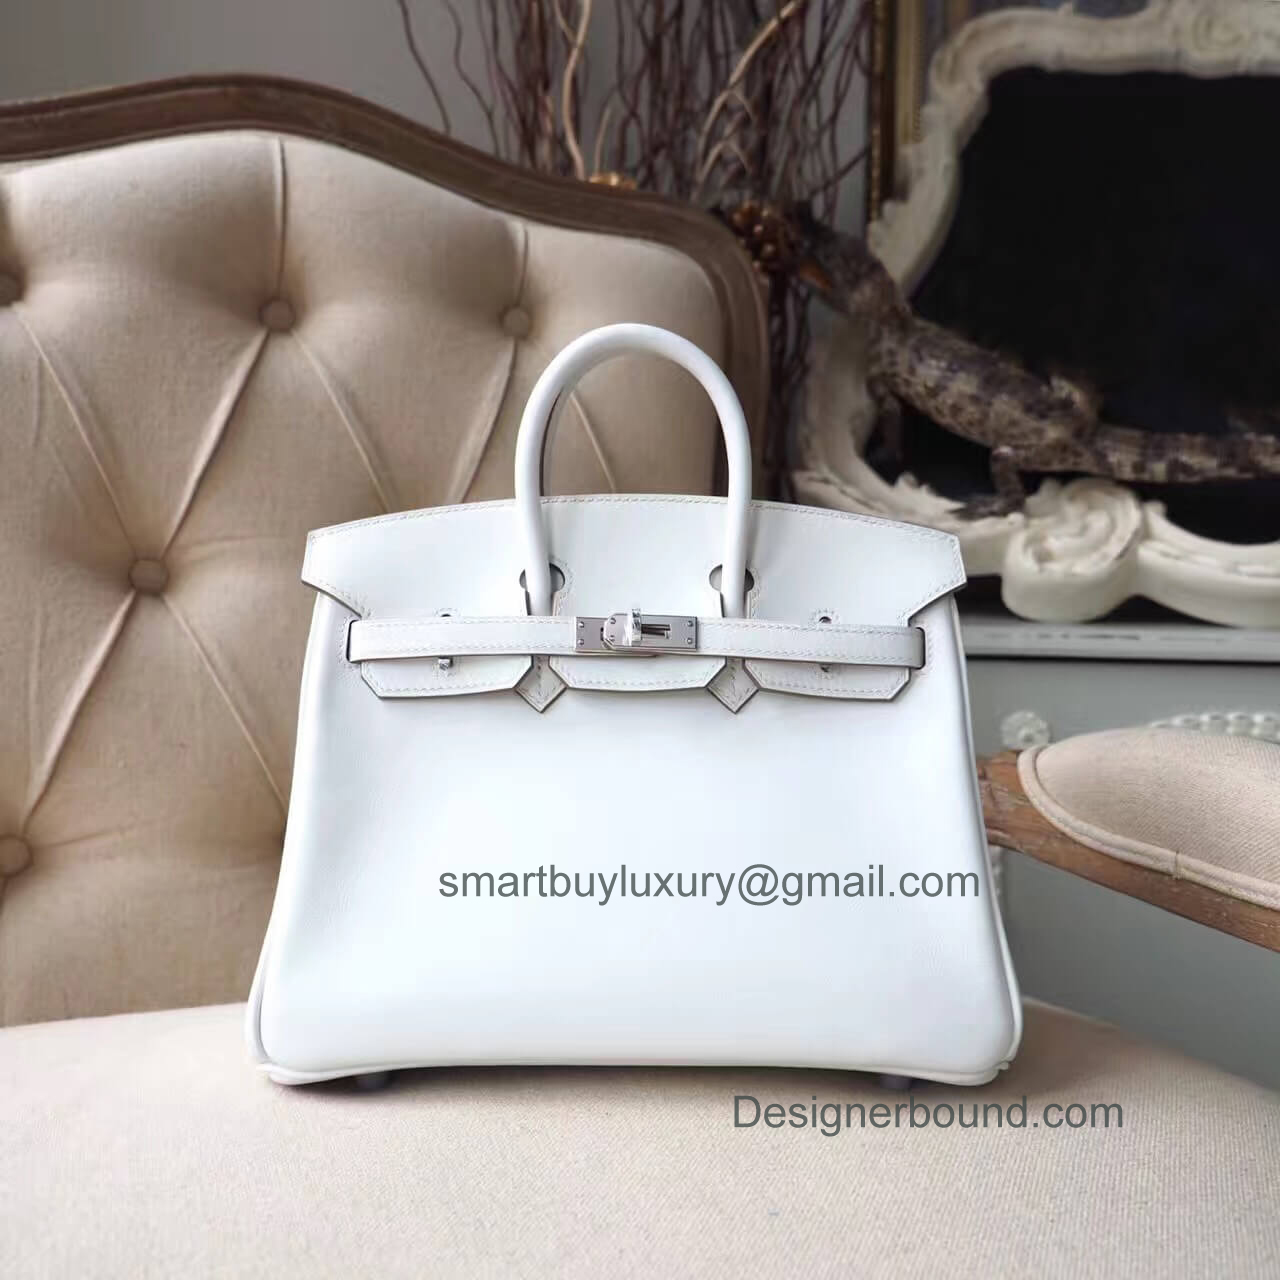 Hermes Birkin 25 Bag in cc10 Craie Swift PHW